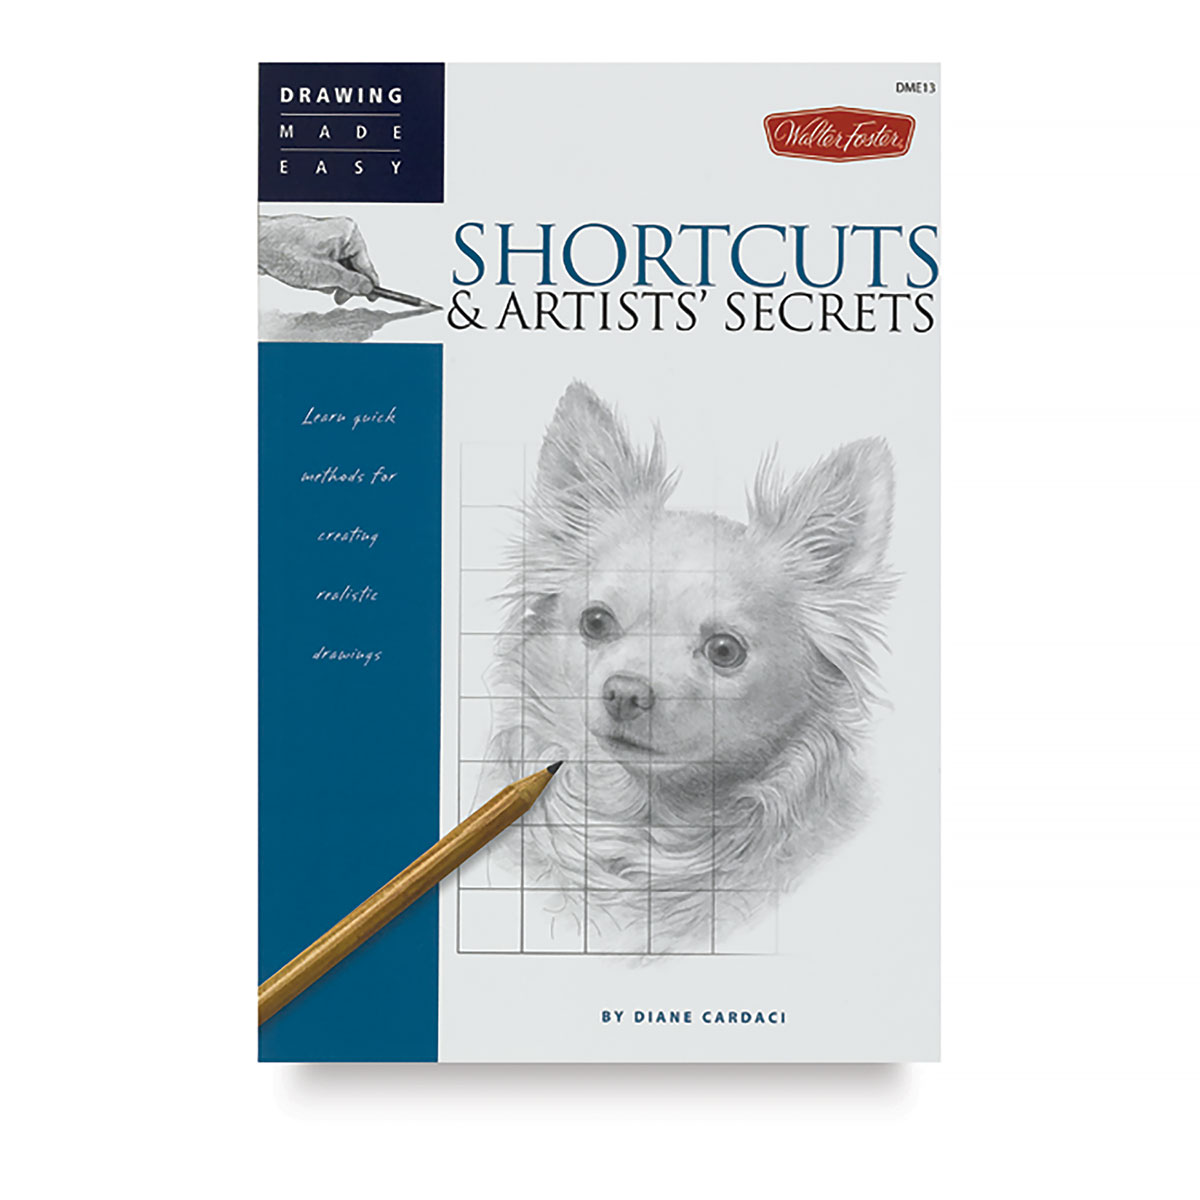 Walter Foster Drawing Made Easy: Shortcuts & Artists' Secrets